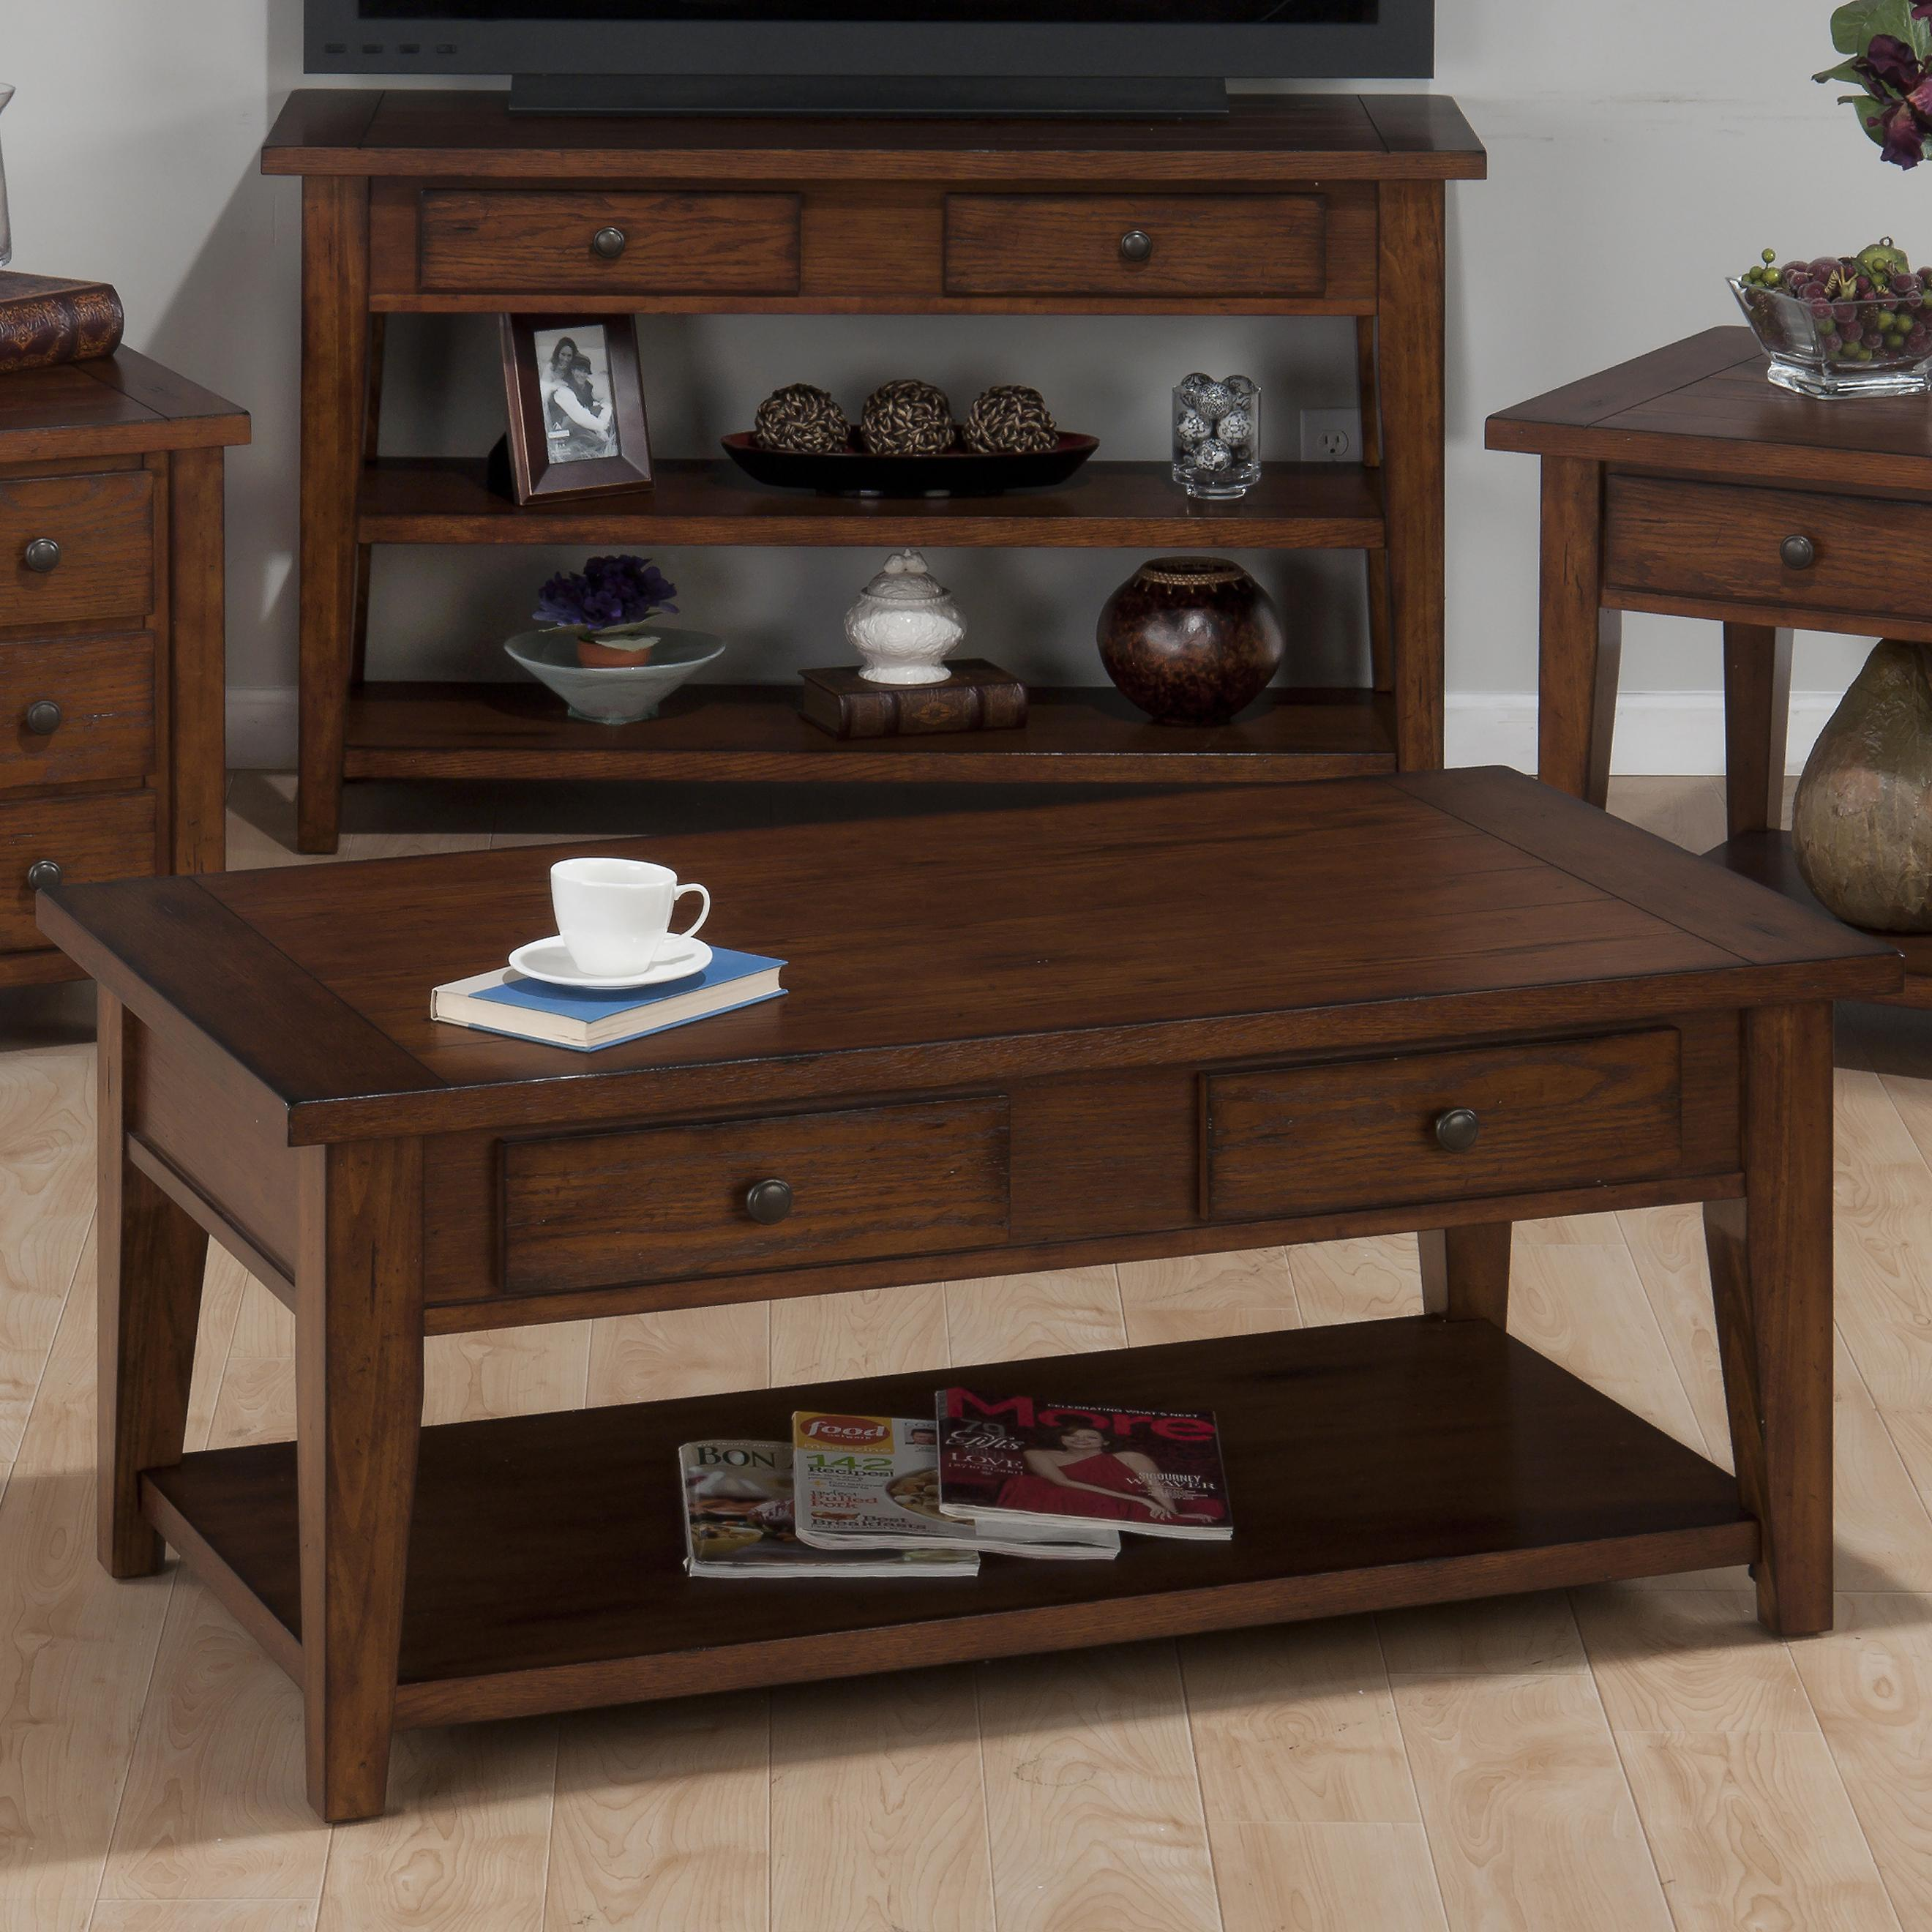 Jofran Clay County Oak Double Header Cocktail Table - Item Number: 443-1